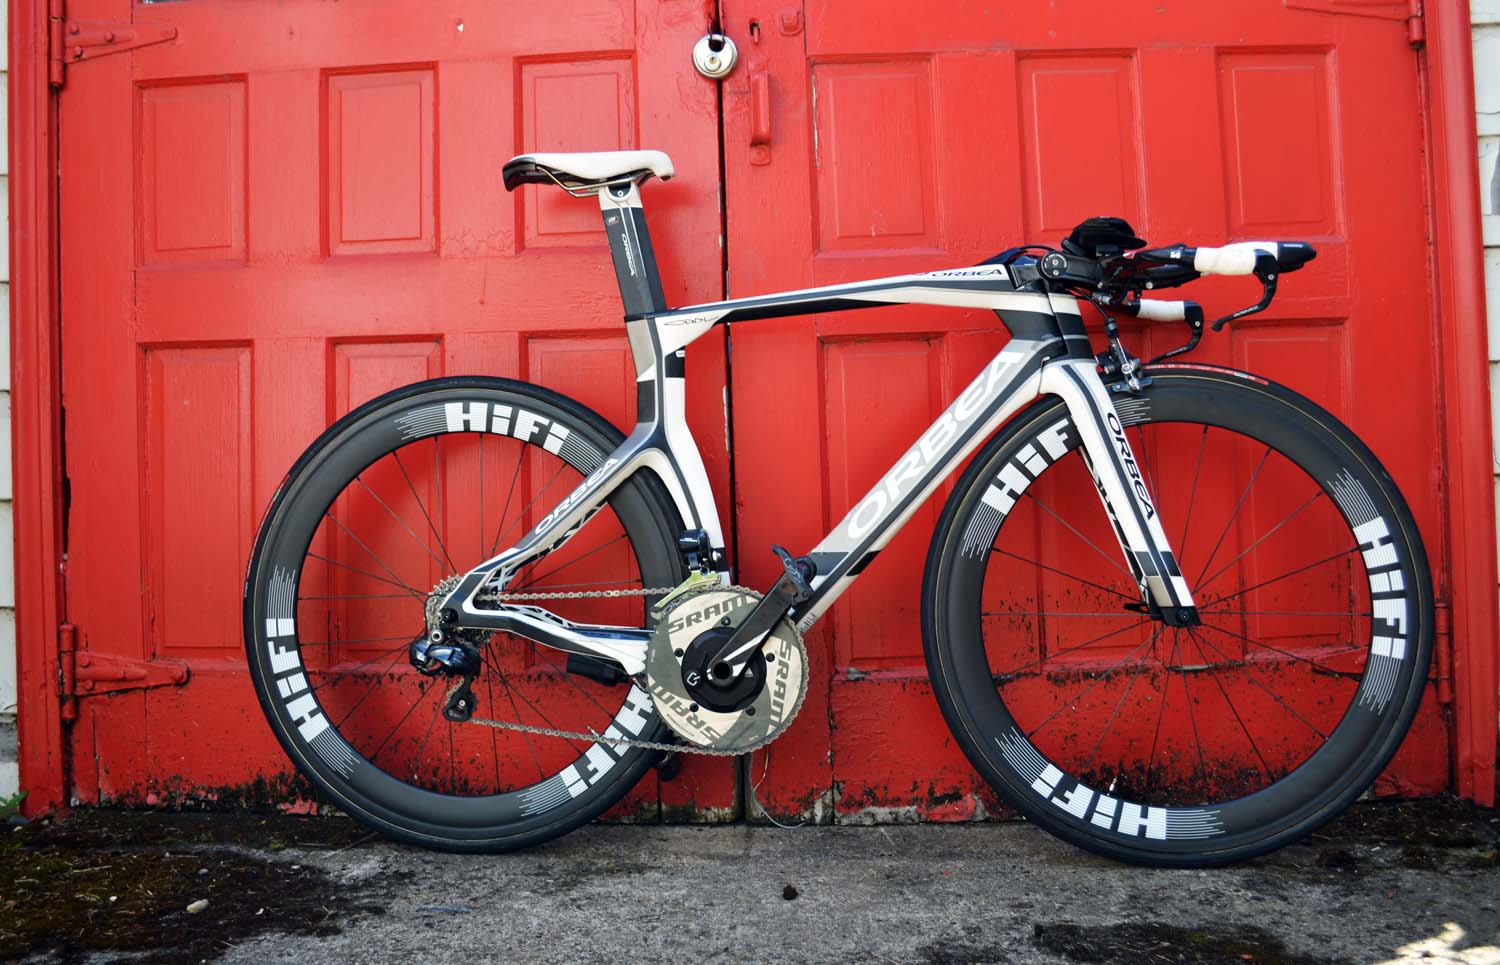 HiFi LP 60mm carbon tubulars on Orbea Ordu TT